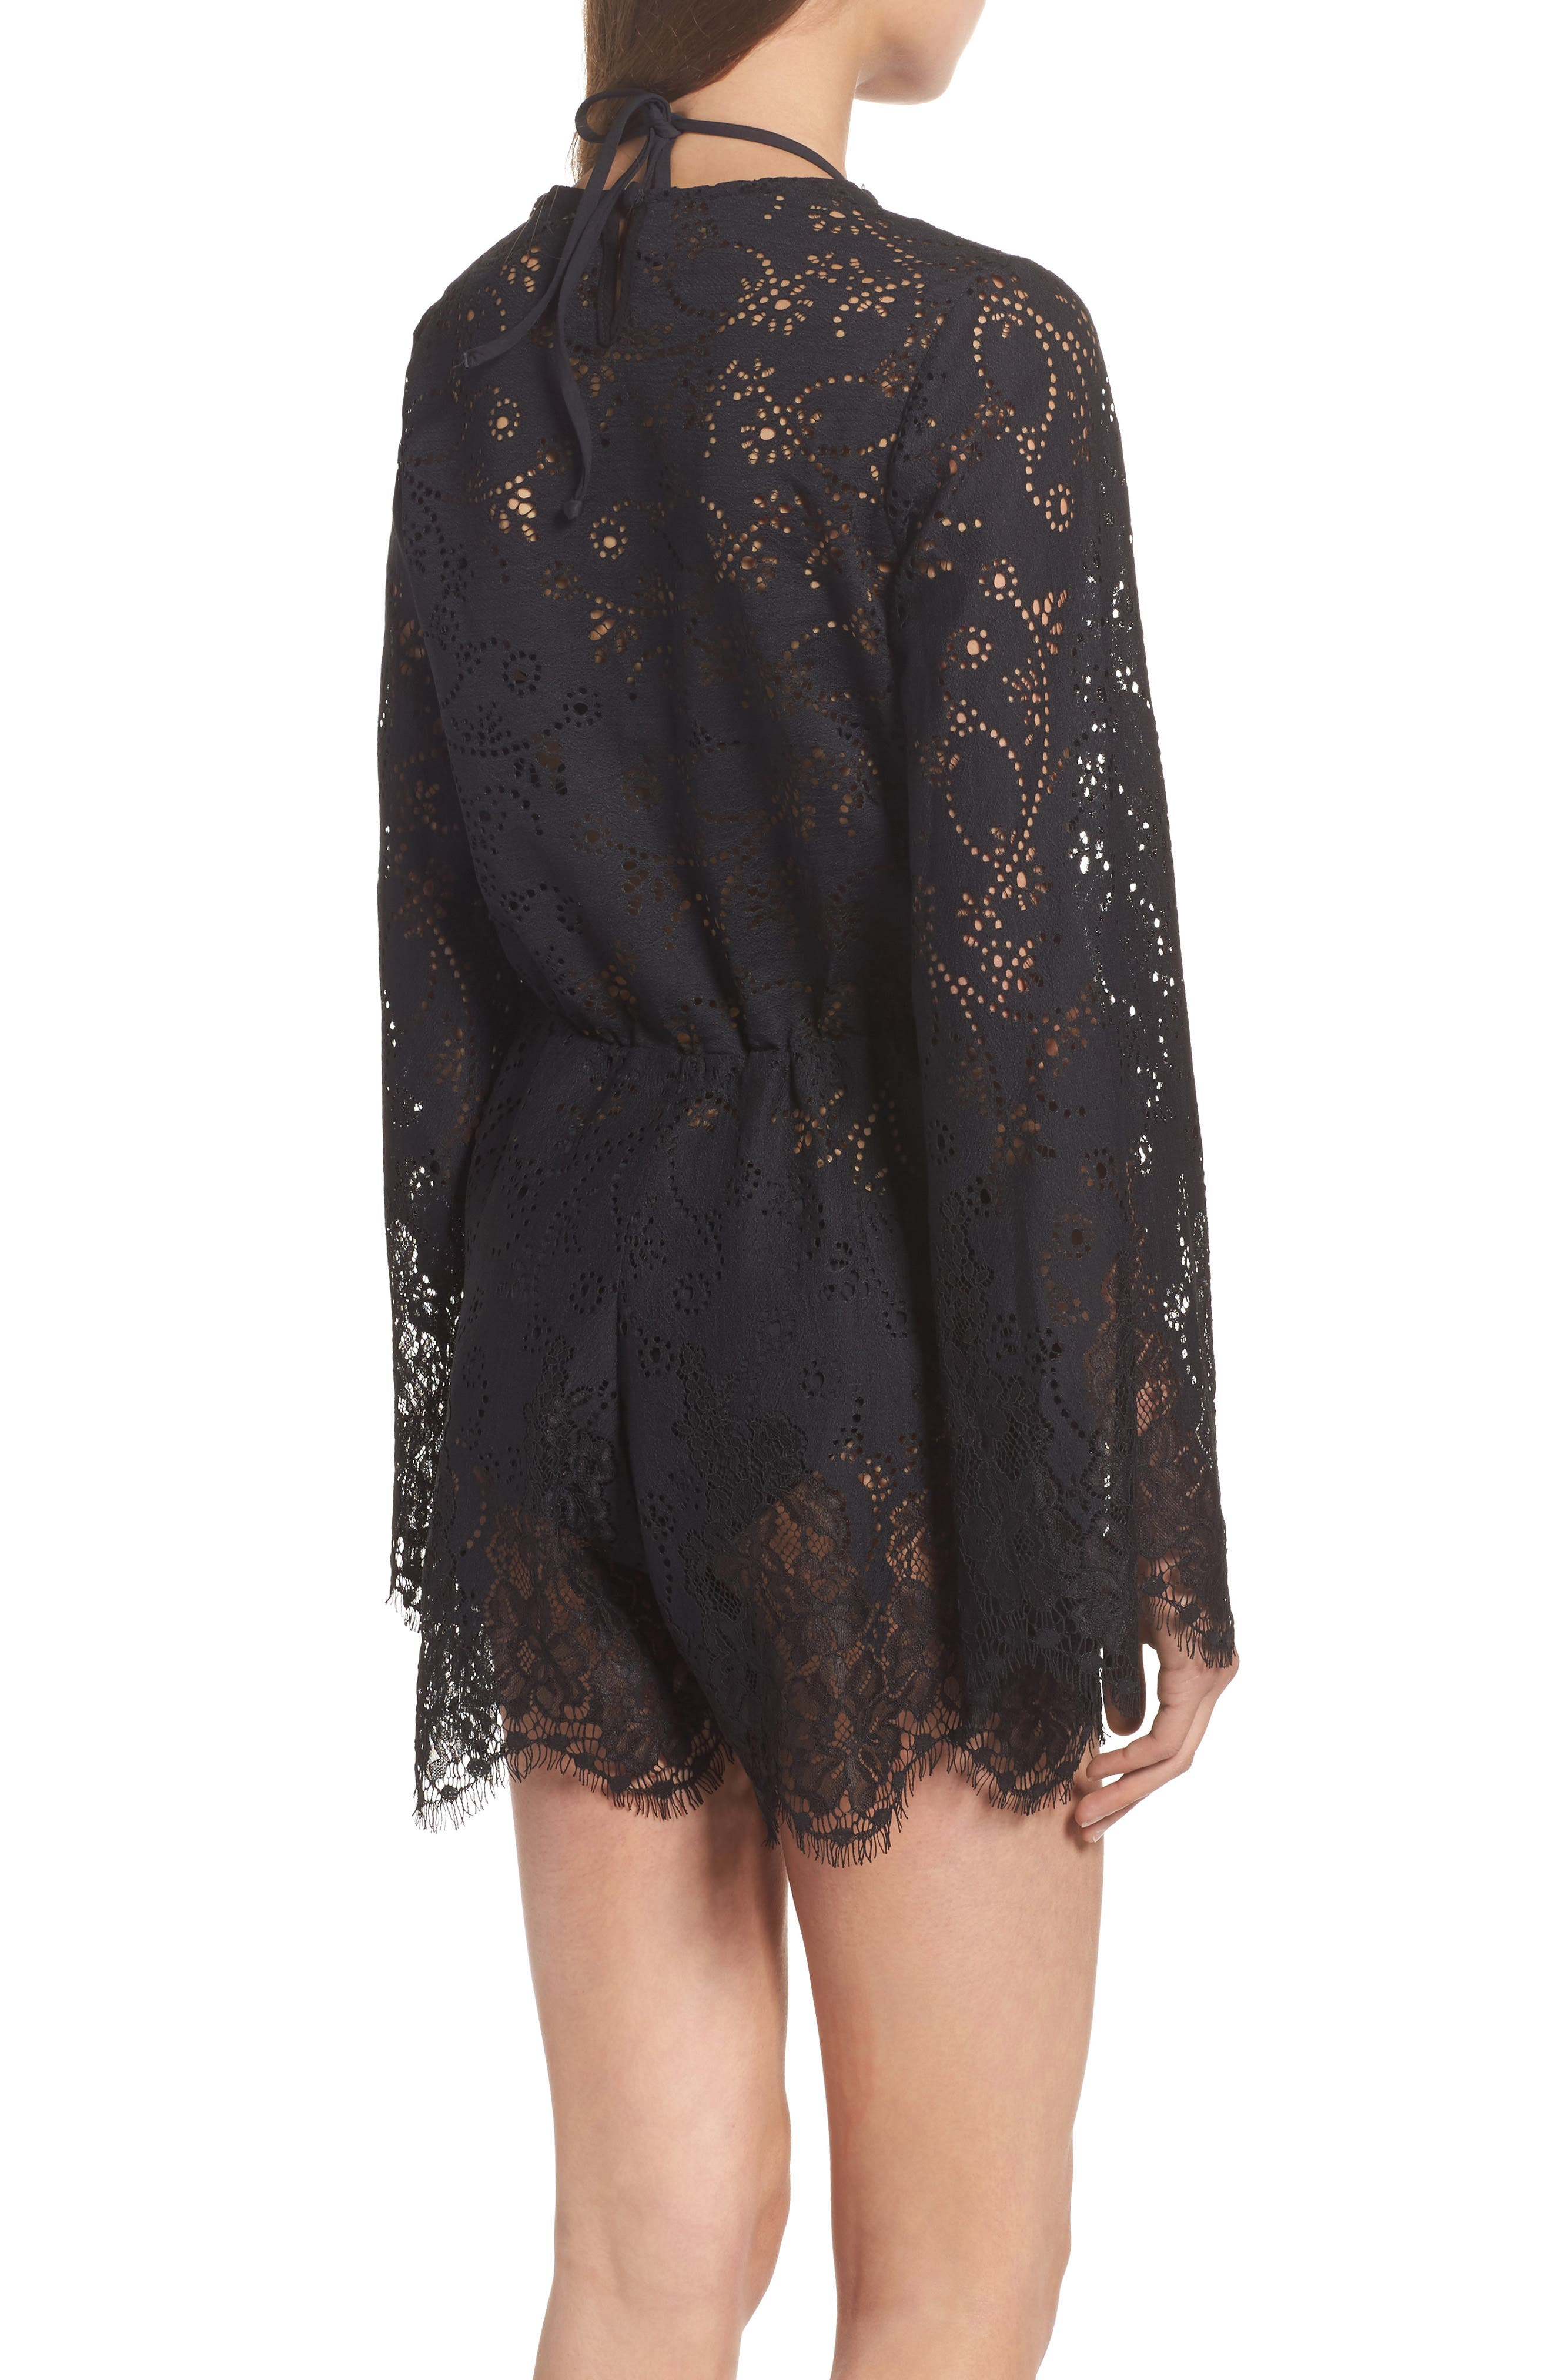 Olympia Lace Cover-Up Romper,                             Alternate thumbnail 2, color,                             001